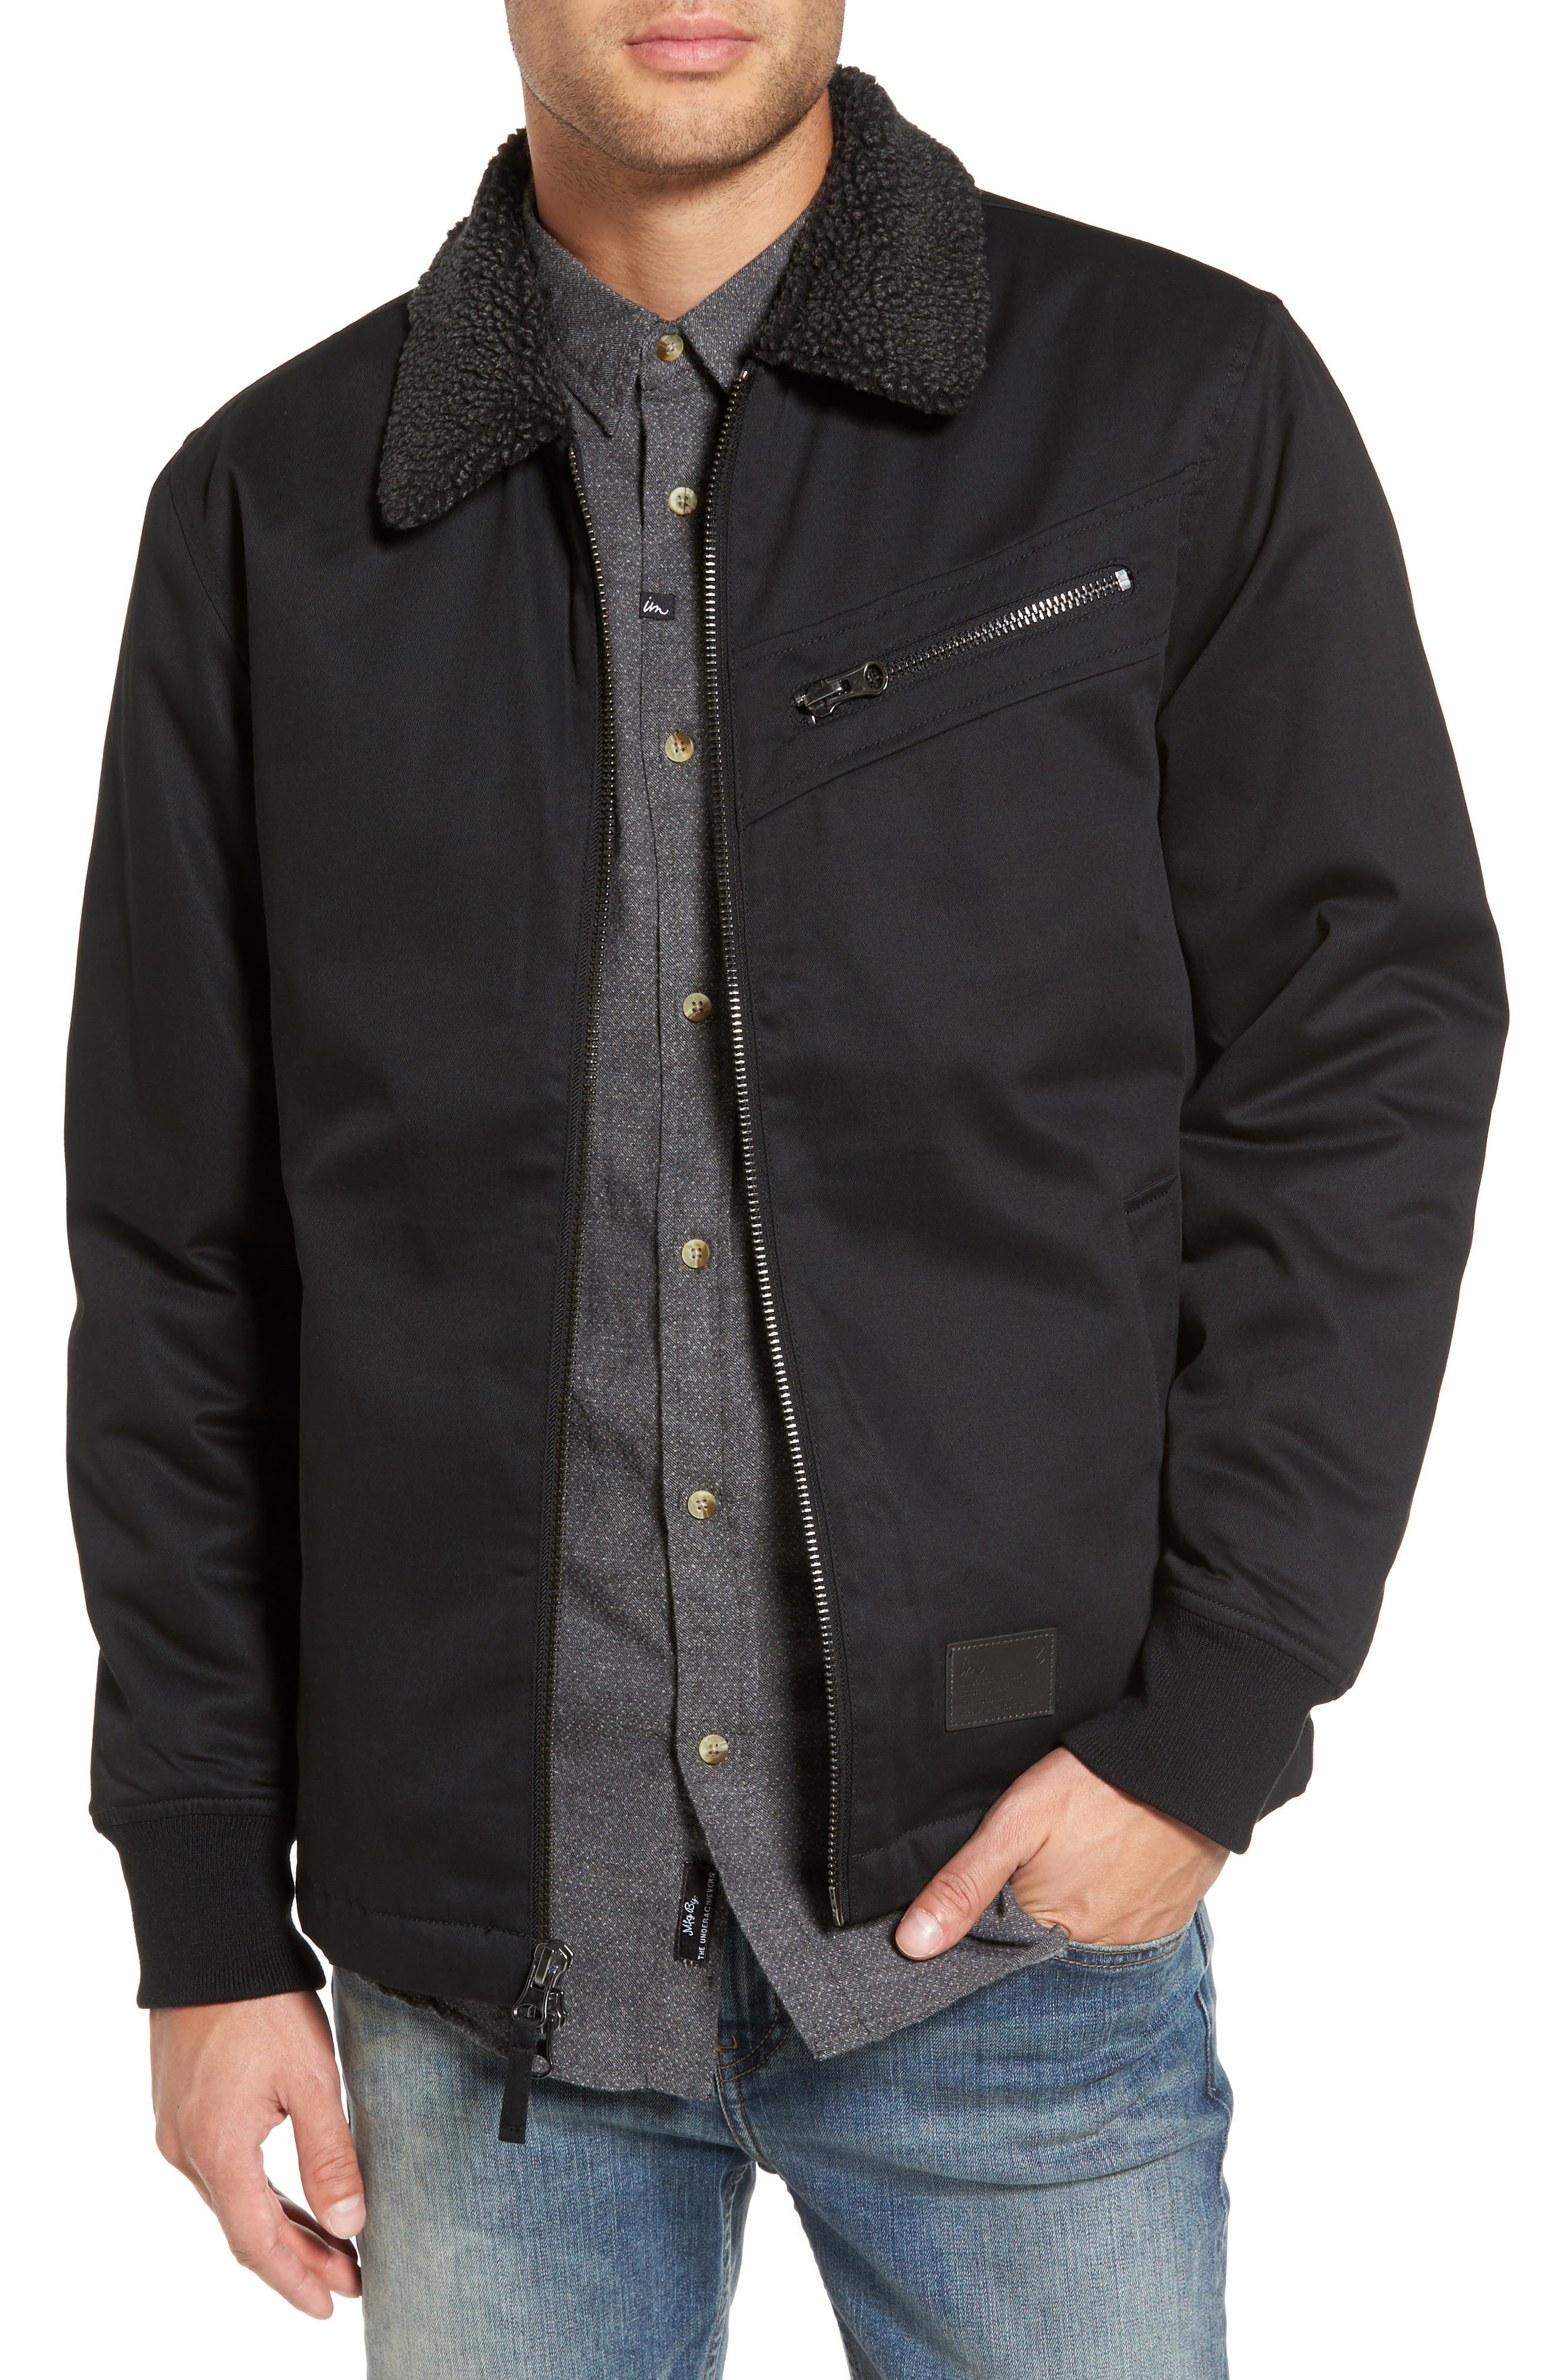 Alternate Image 1 Selected - Imperial Motion Maddox Jacket